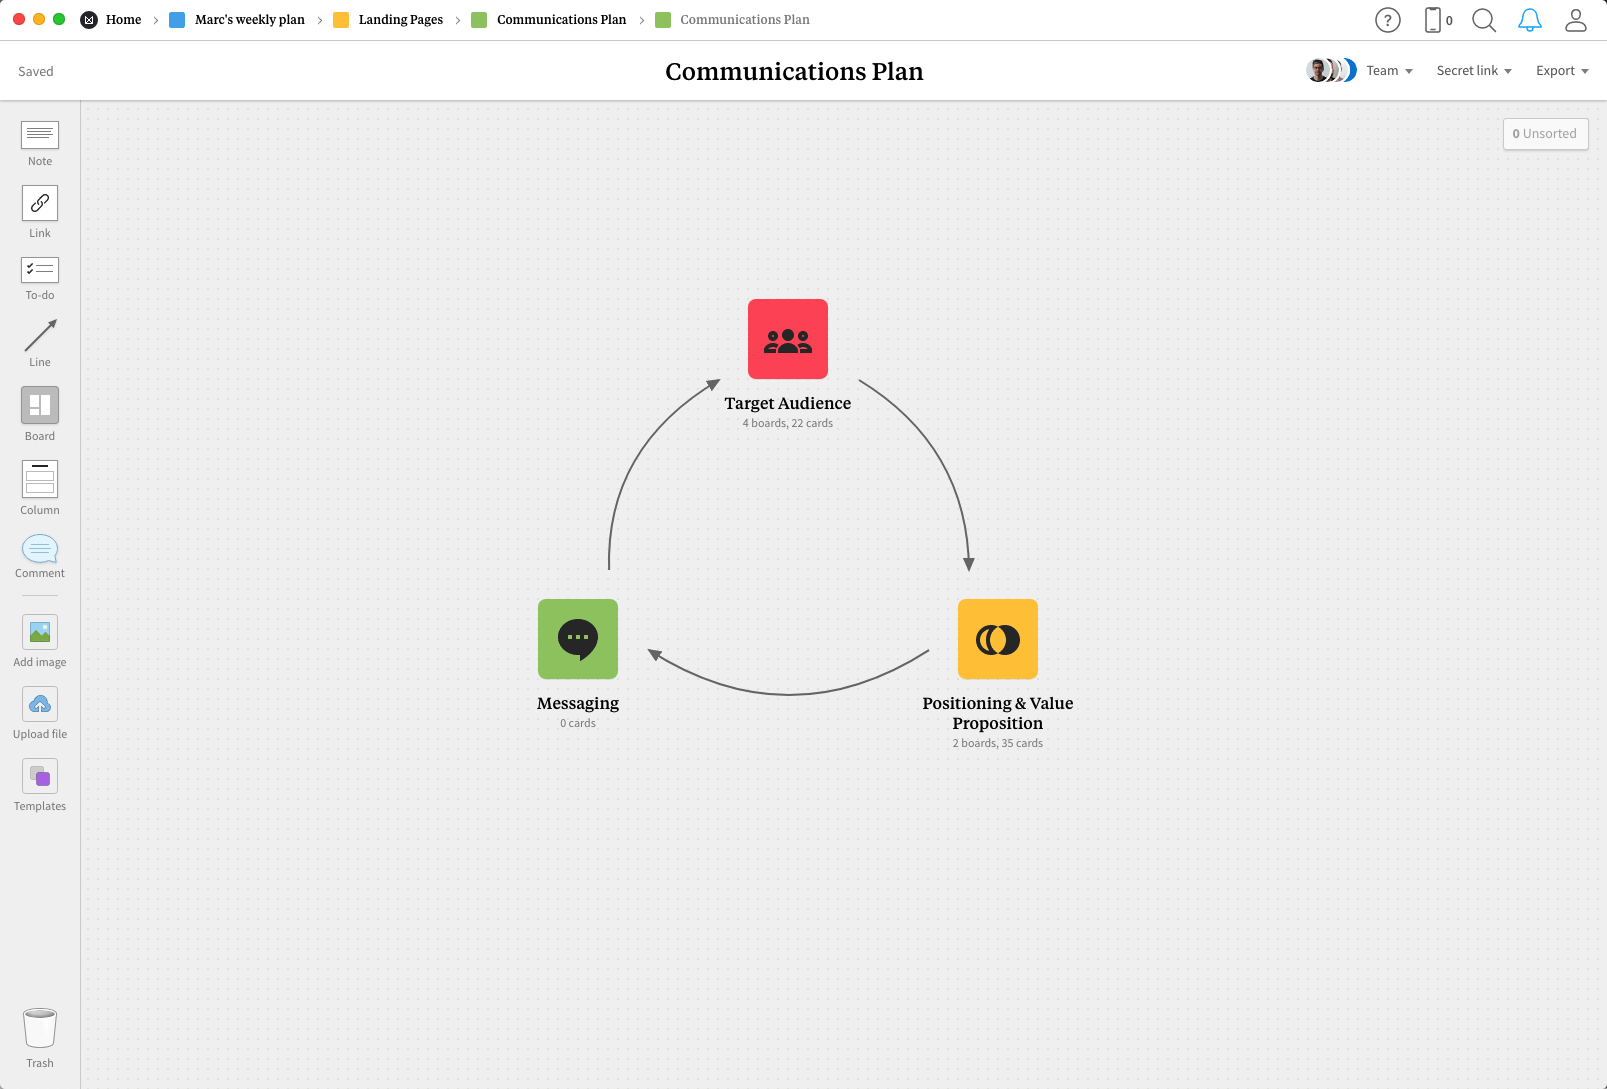 Completed Communications Plan template in Milanote app